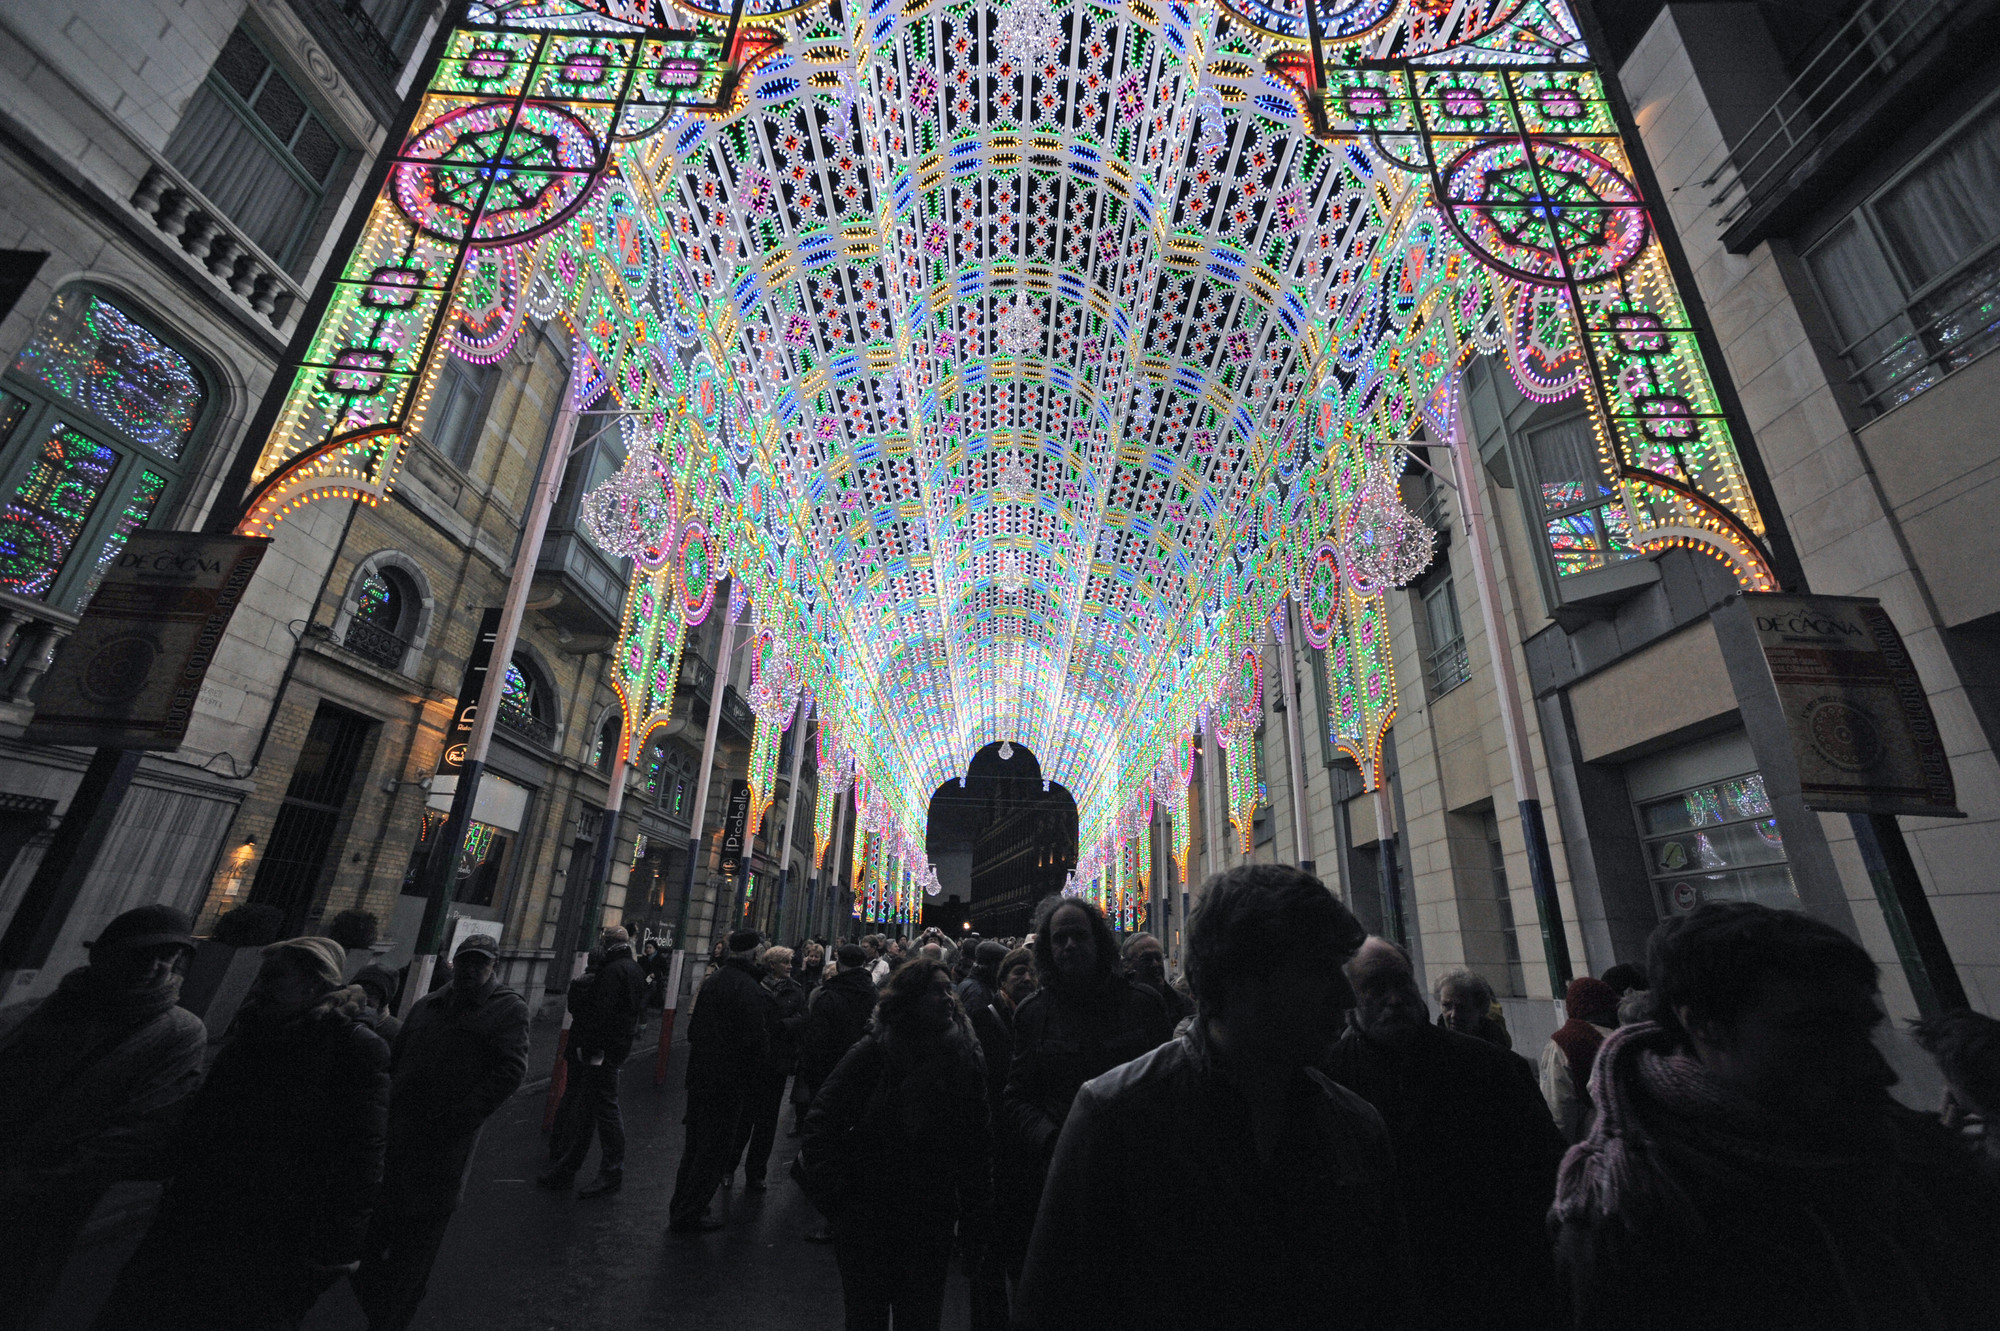 Cagna Illuminations, 2012. Design: De Cagna . Light Festival Ghent. Image Courtesy of City of Ghent